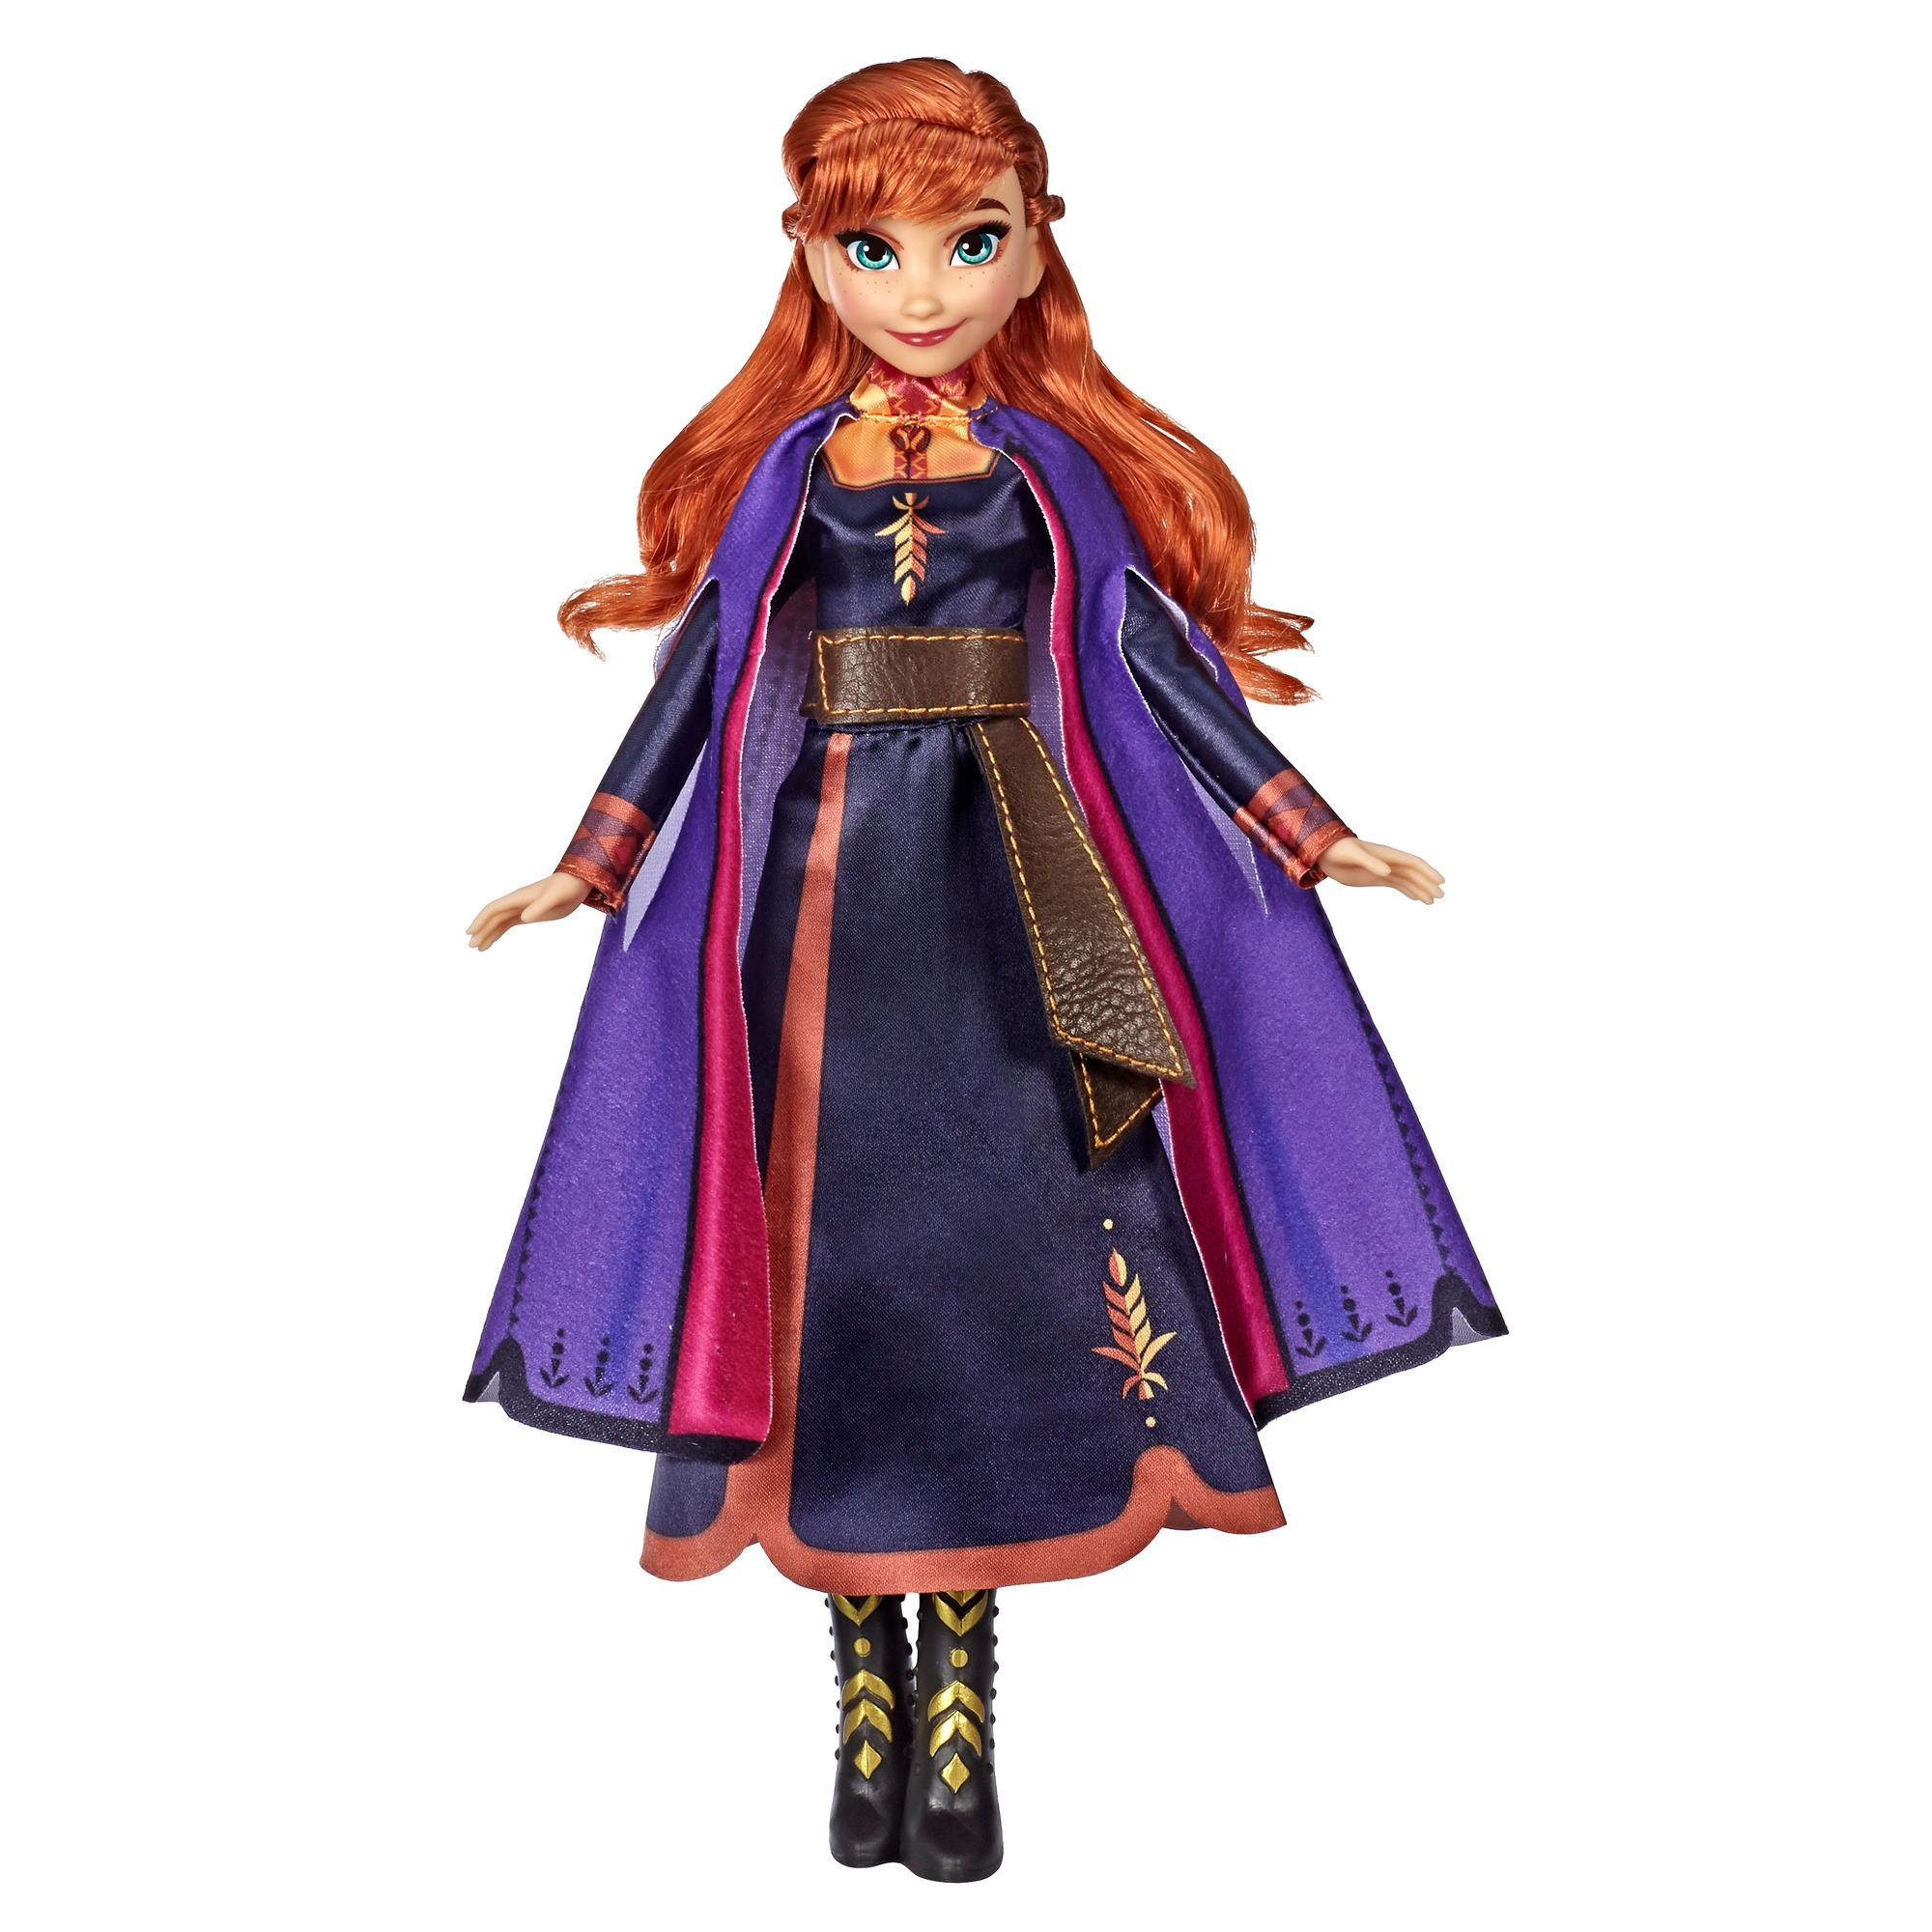 Disney Frozen Singing Anna Fashion Doll with Music Wearing a Purple Dress Inspired by Disney Frozen 2